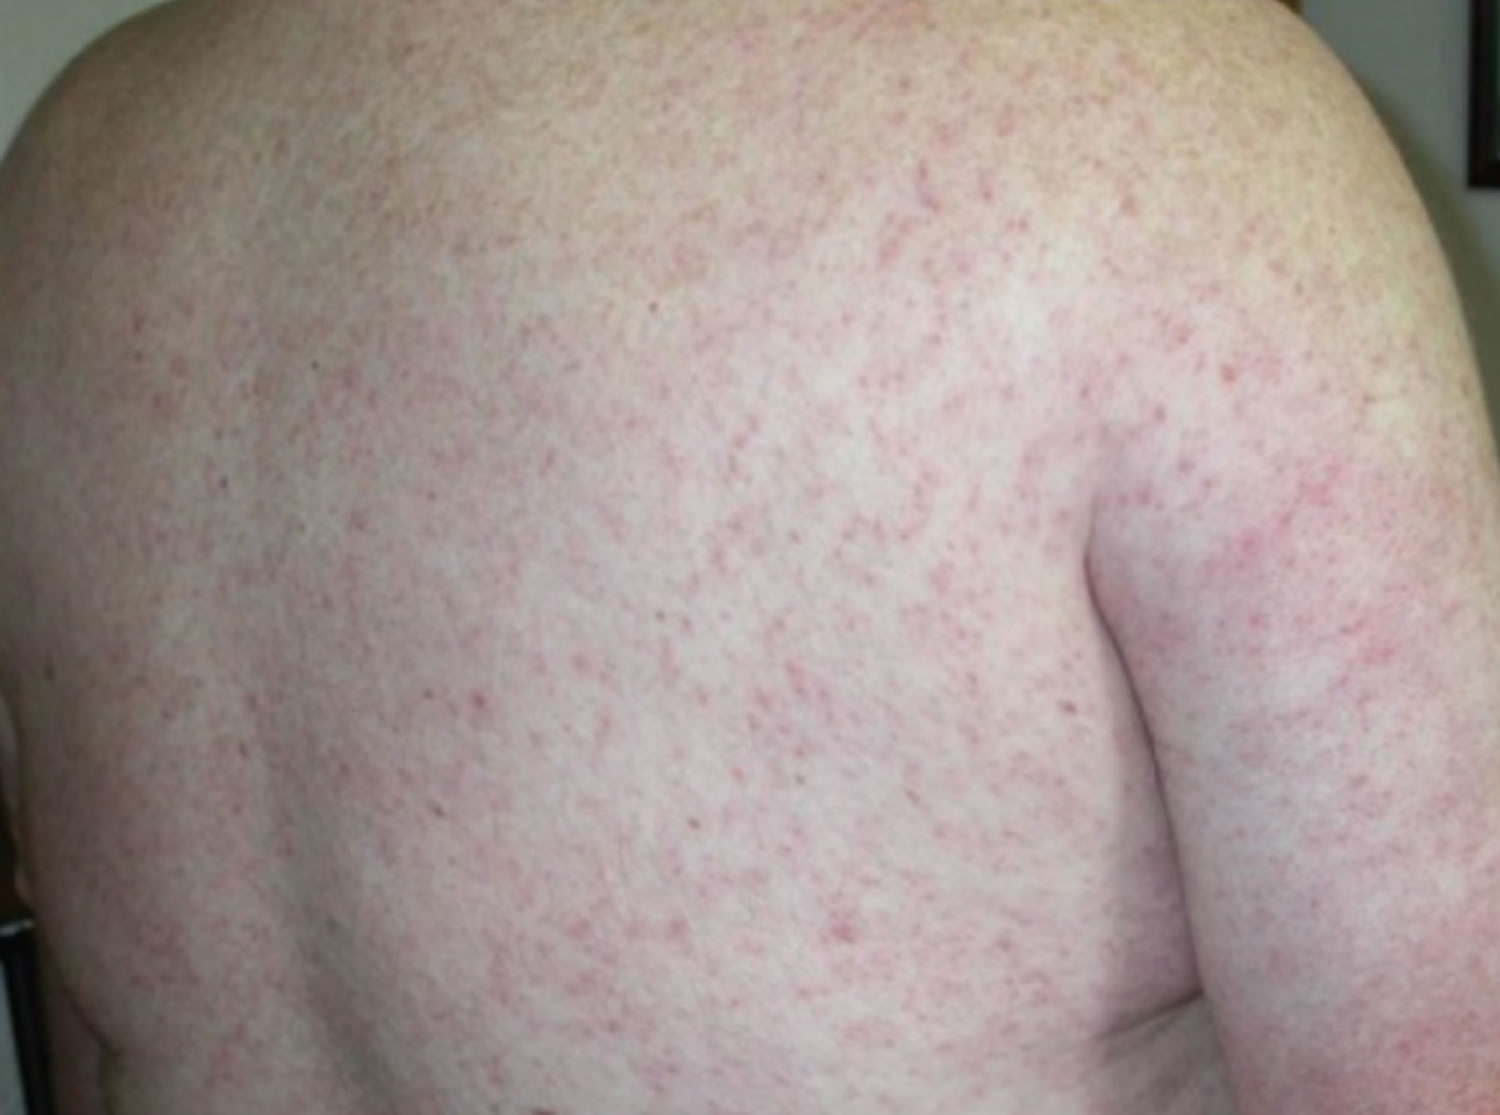 West Nile virus rash